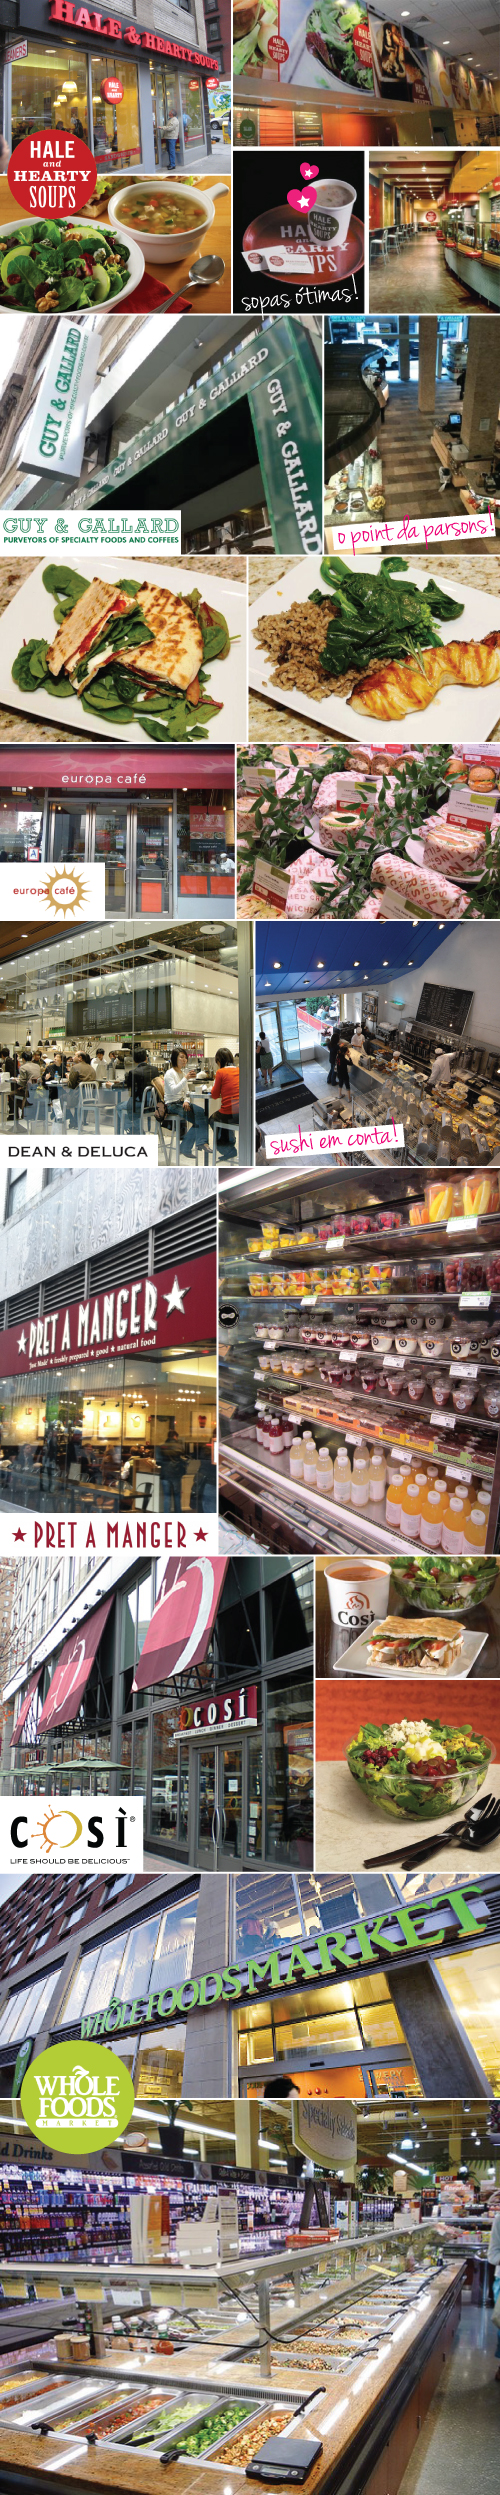 DICA RESTAURANTE EM NY NYC RAPIDO QUICK MEAL SOPA SALADA LIGHT SAUDAVEL HEALTHY FOOD MANHATTAN HALE AND HEARTY SOUP GUY & GALLARD PRET A MANGER DEAN 7 DELLUCA WHOLE FOODS EUROPA CAFE COSI DELI MIDTOWN ONDE IR STARVING